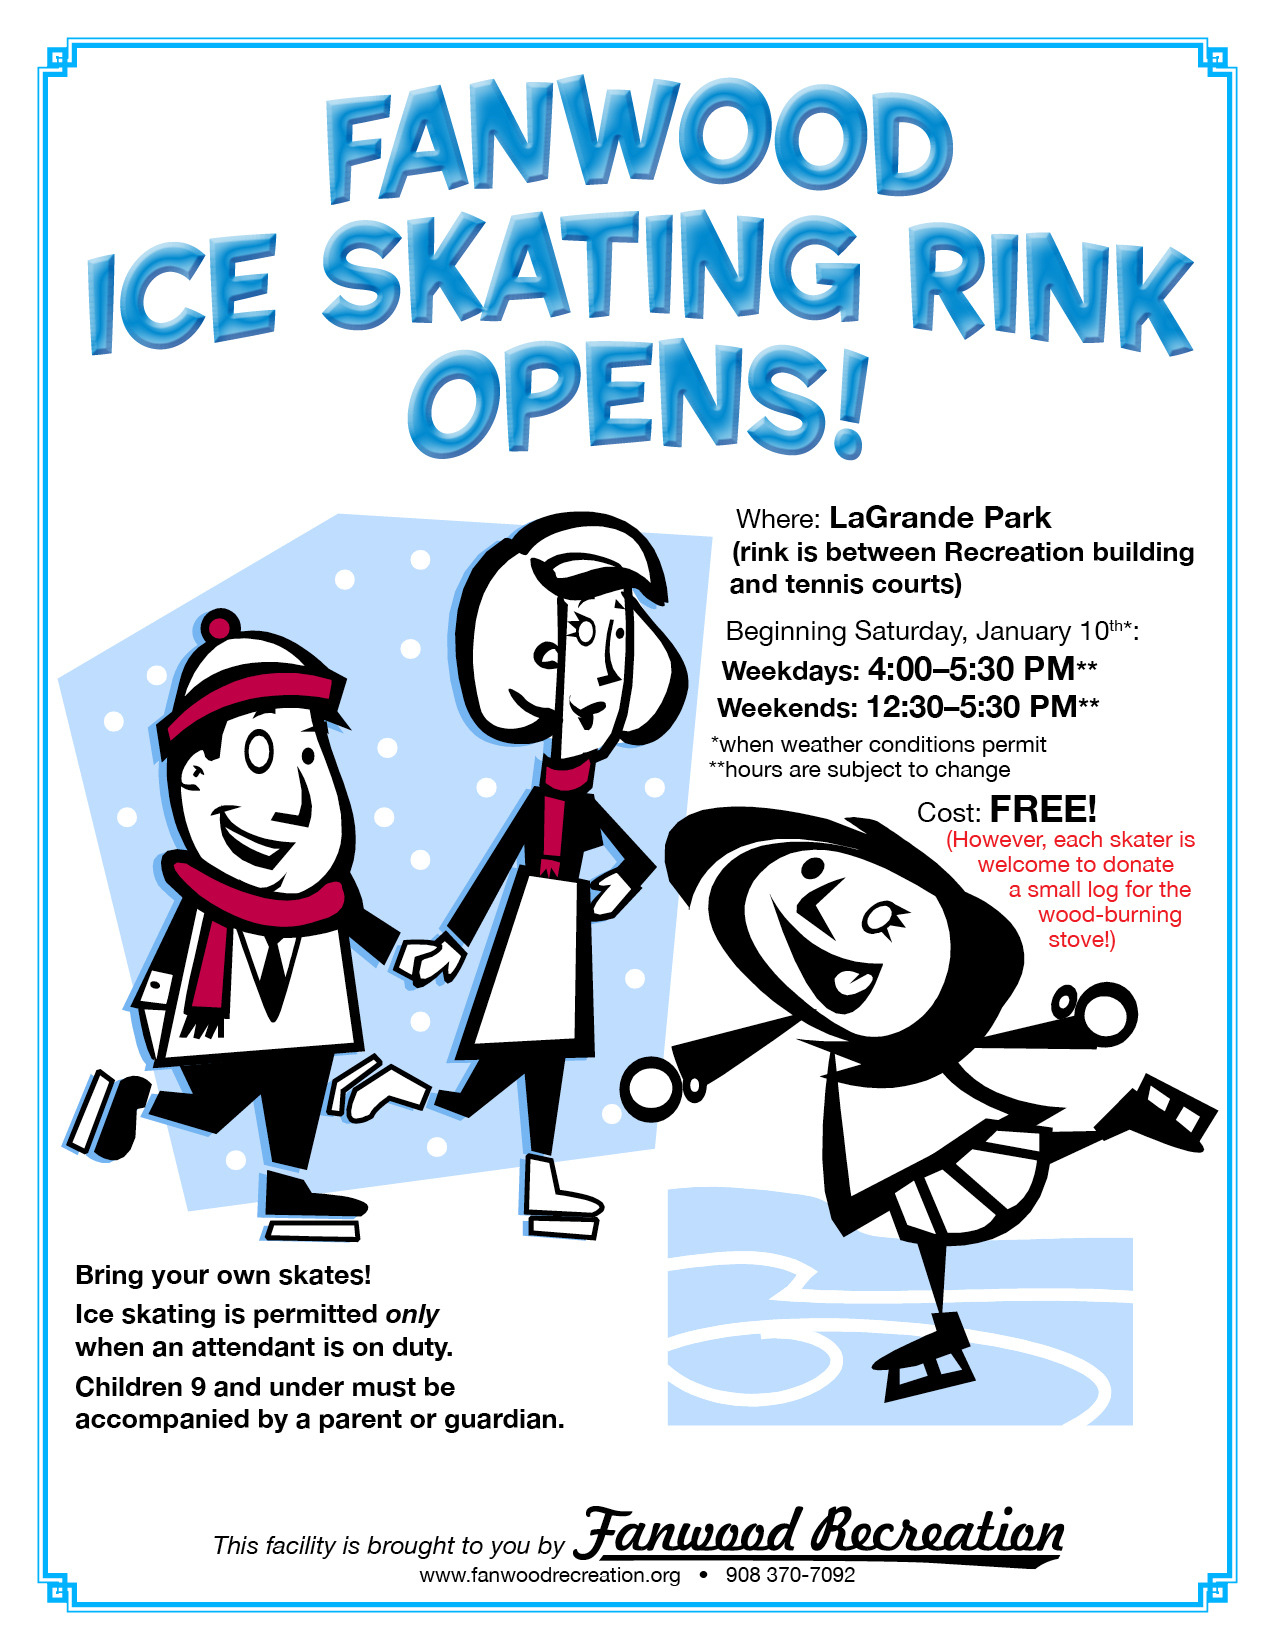 1b70a2a33e06361028ea_Fanwood_Ice_Skating_Rink_2015.jpg